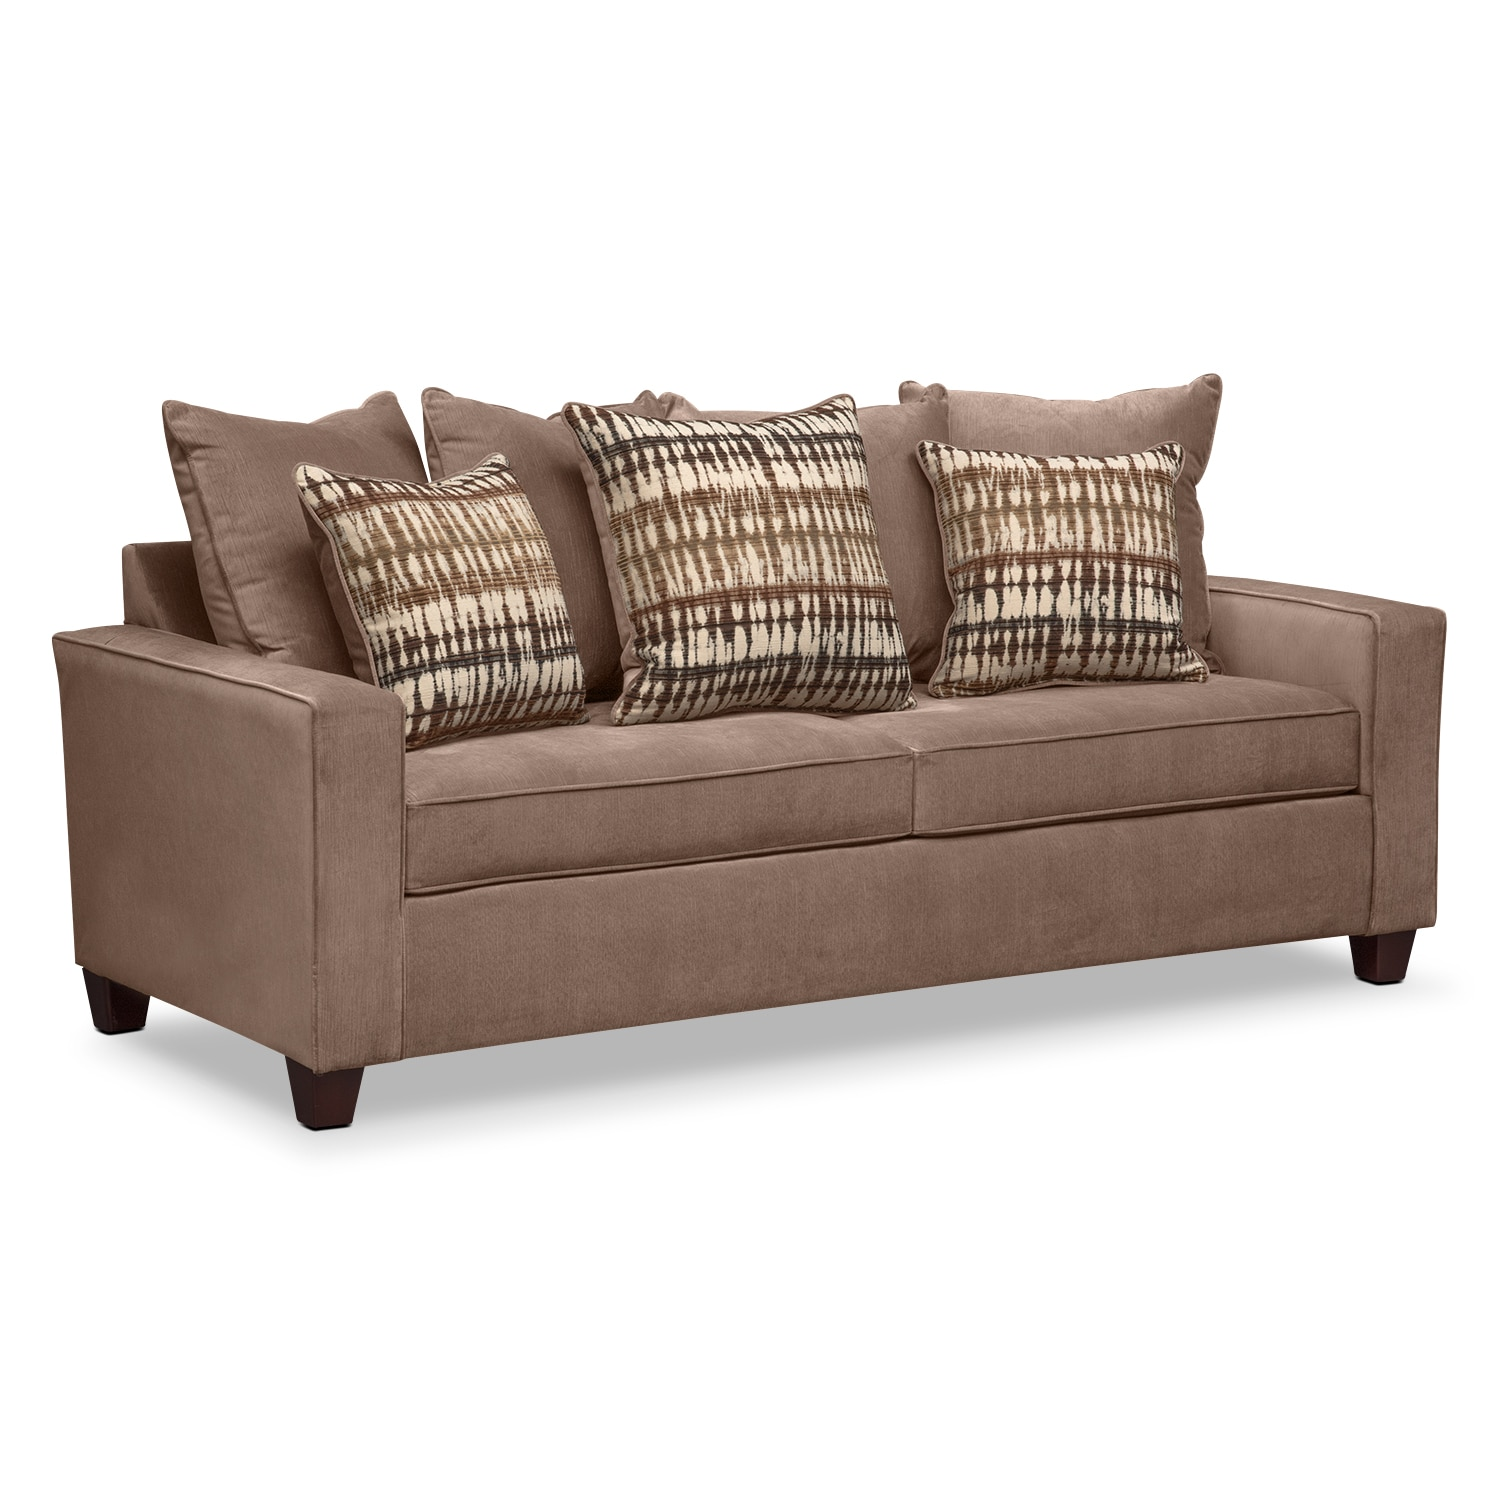 Bryden Queen Innerspring Sleeper Sofa - Chocolate